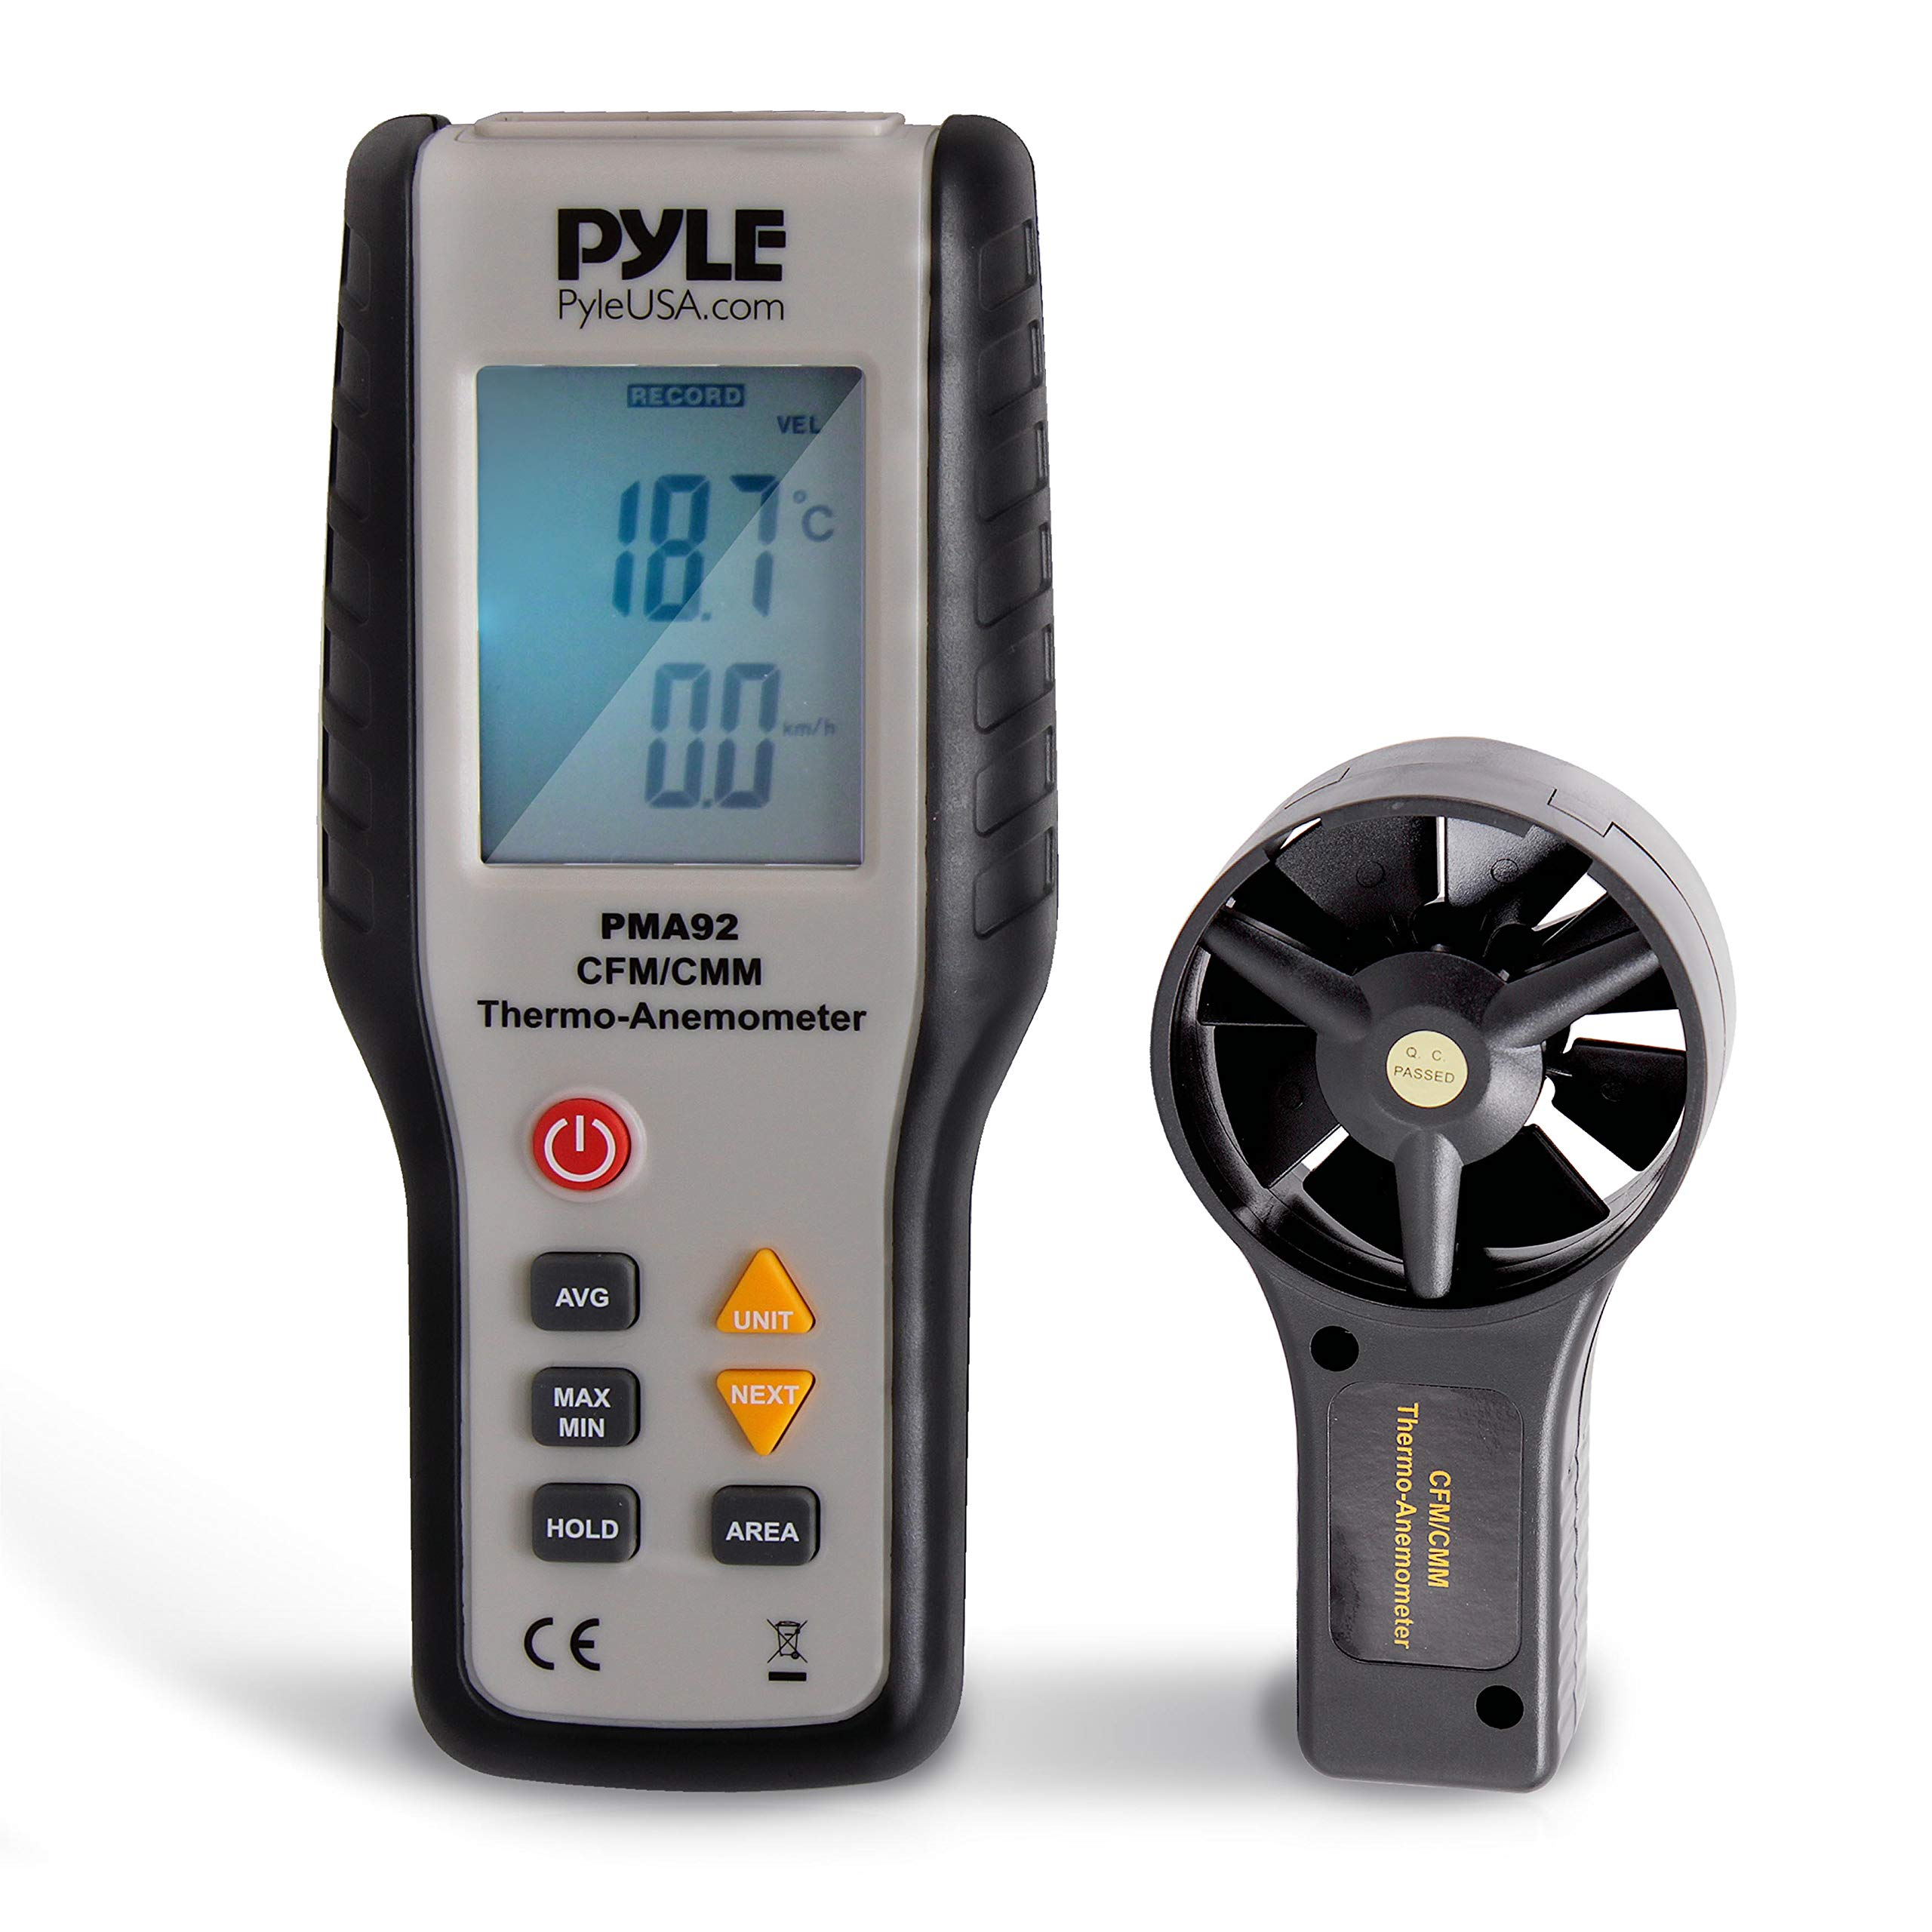 Digital Wind Speed Anemometer Handheld - Portable Air Flow Meter CFM Thermometer Measurement Gauge Tool Kit w/ LCD, Backlight for Kite Flying, Surfing, Fishing, Sailing, Weather Station - Pyle PMA92